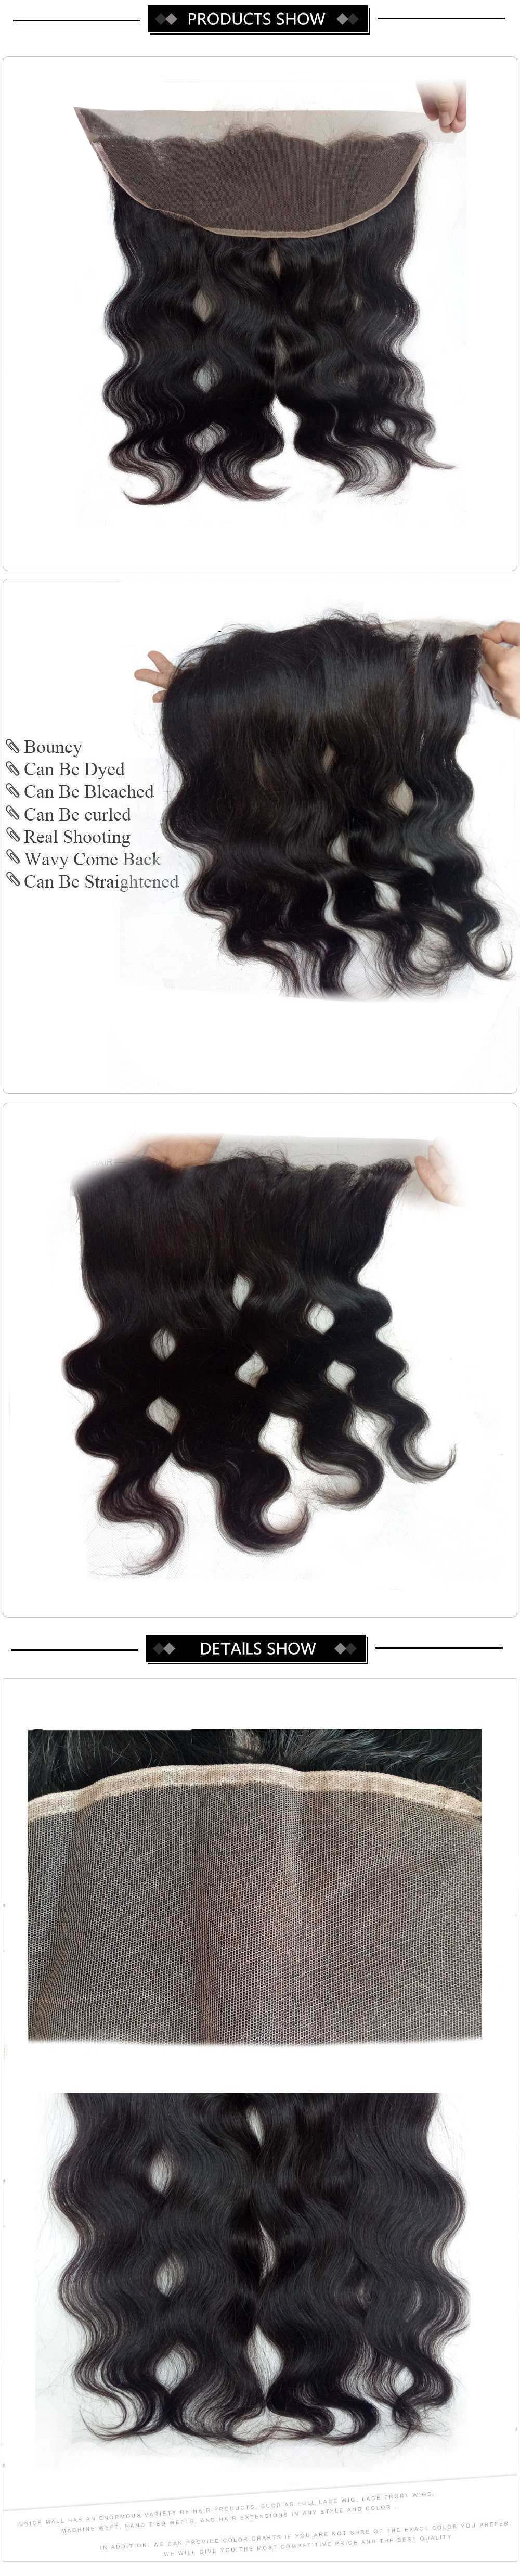 body-wave-remy-human-hair-13x4-lace-closure-01